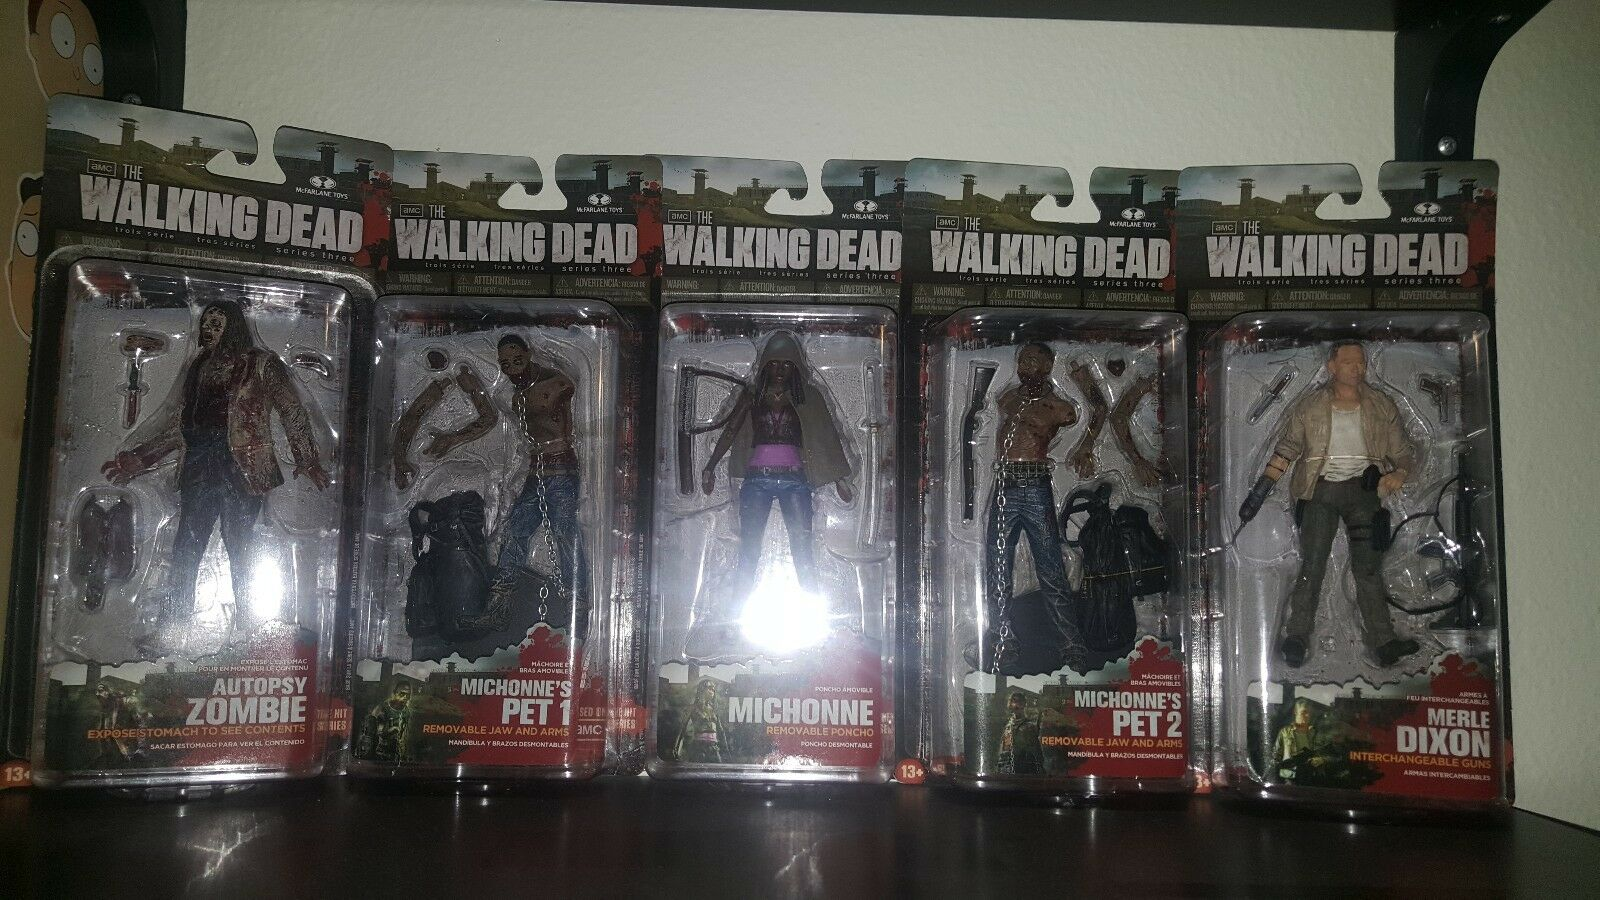 The Walking Dead McFarlane Action Figure Series 3 complete set